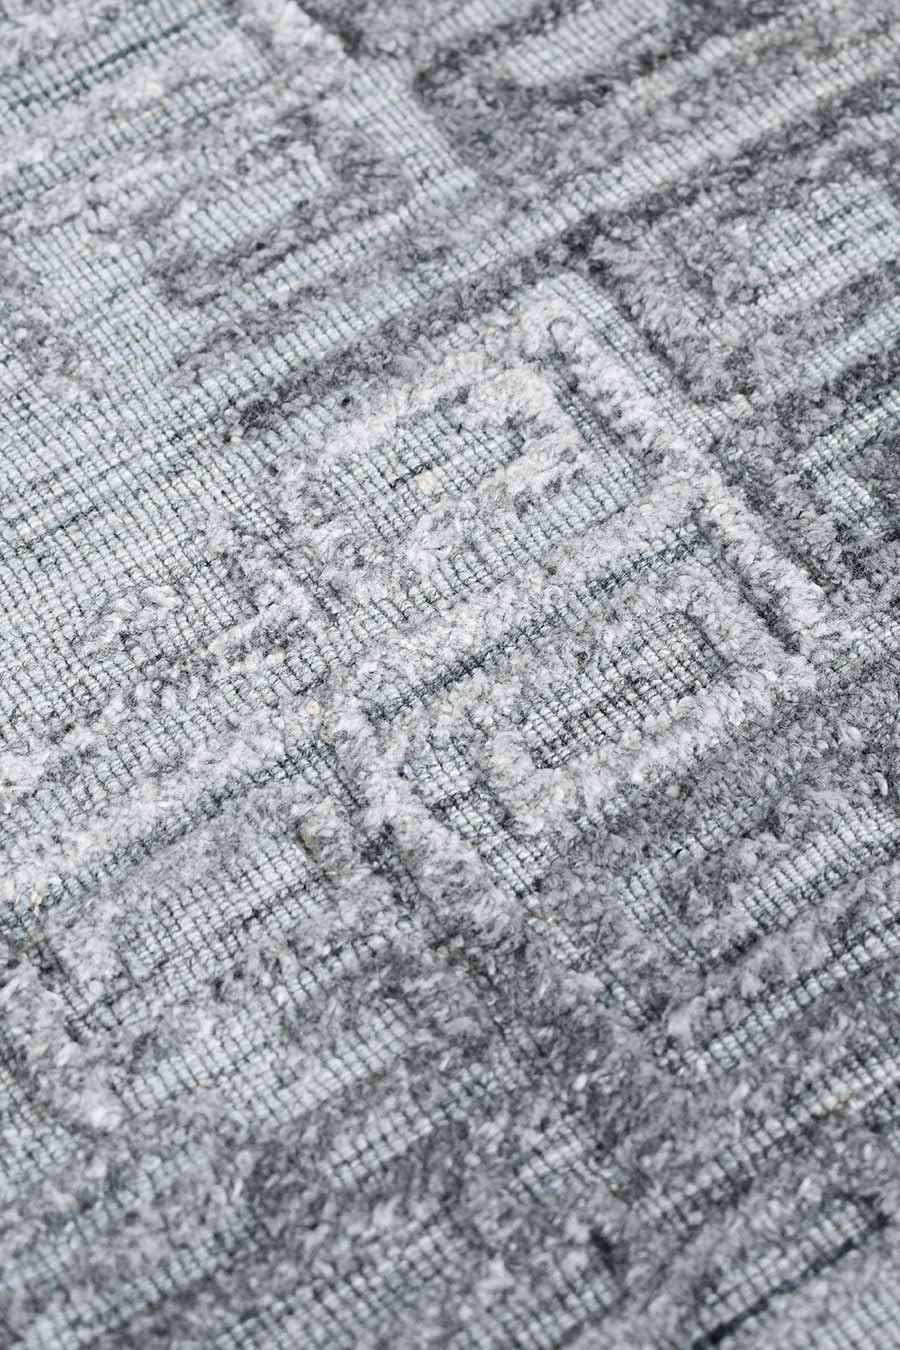 Detailed image of silver Wilson rug